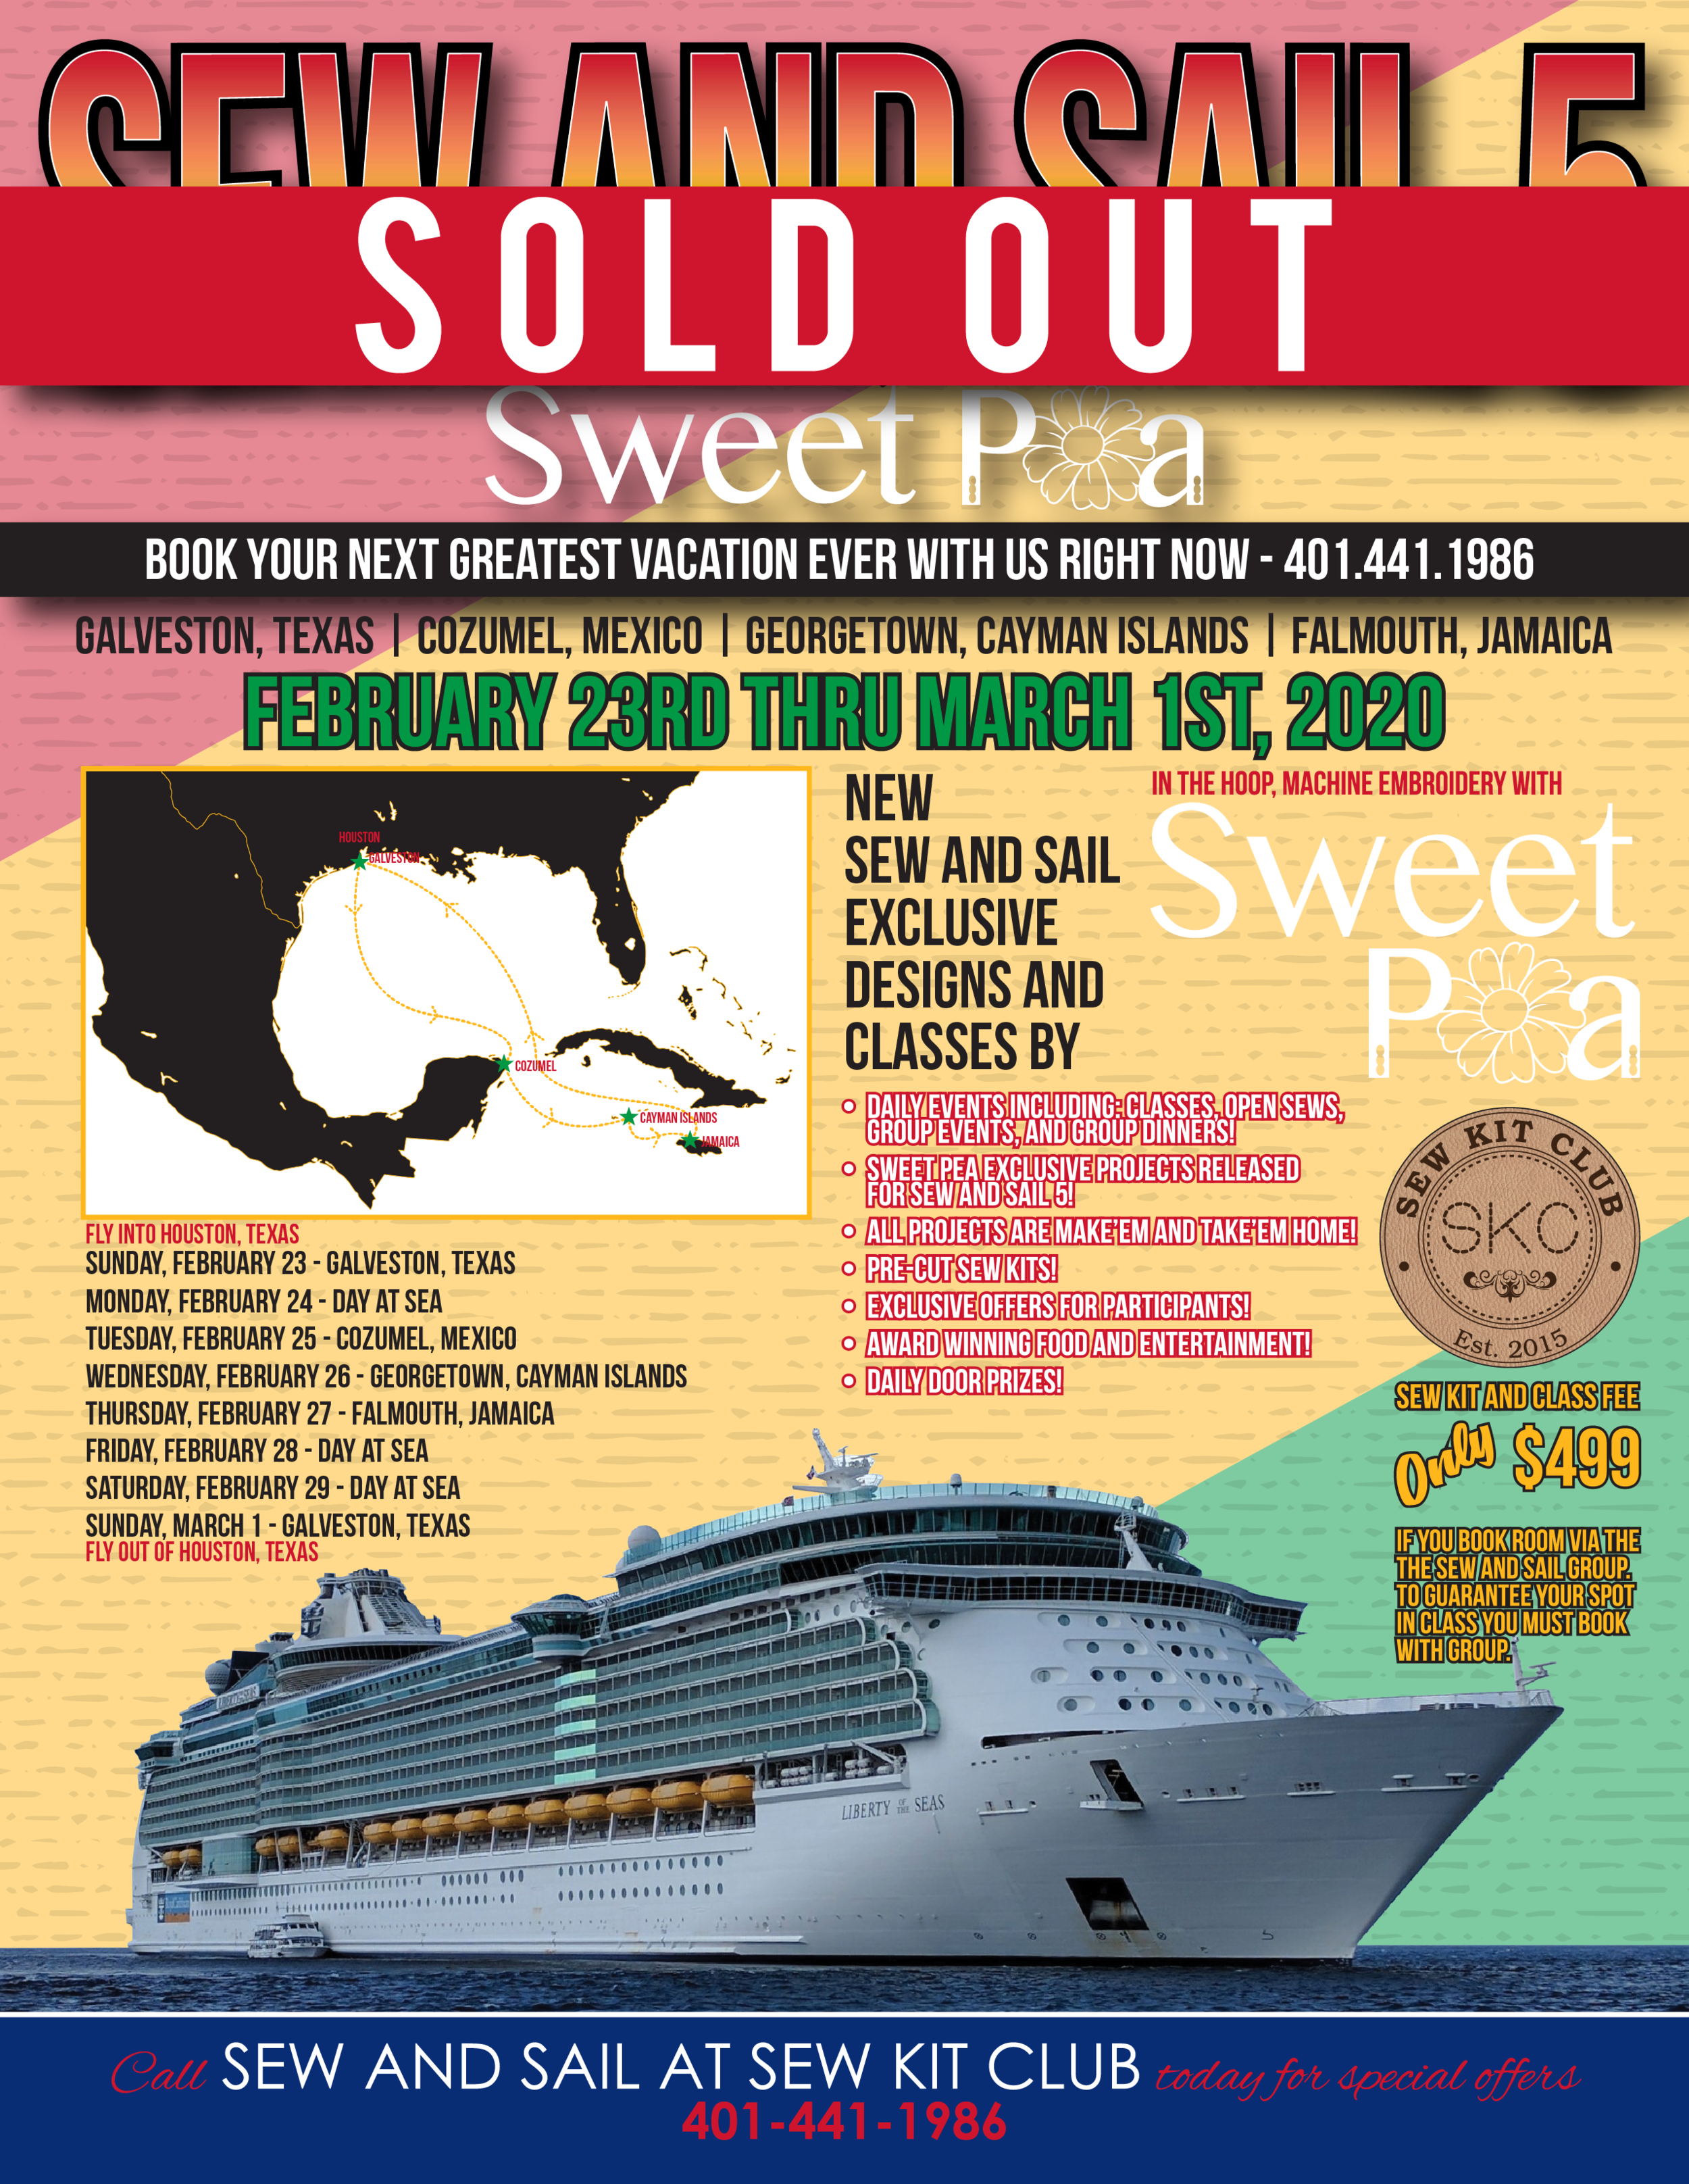 sew and sail 5 flyer.png